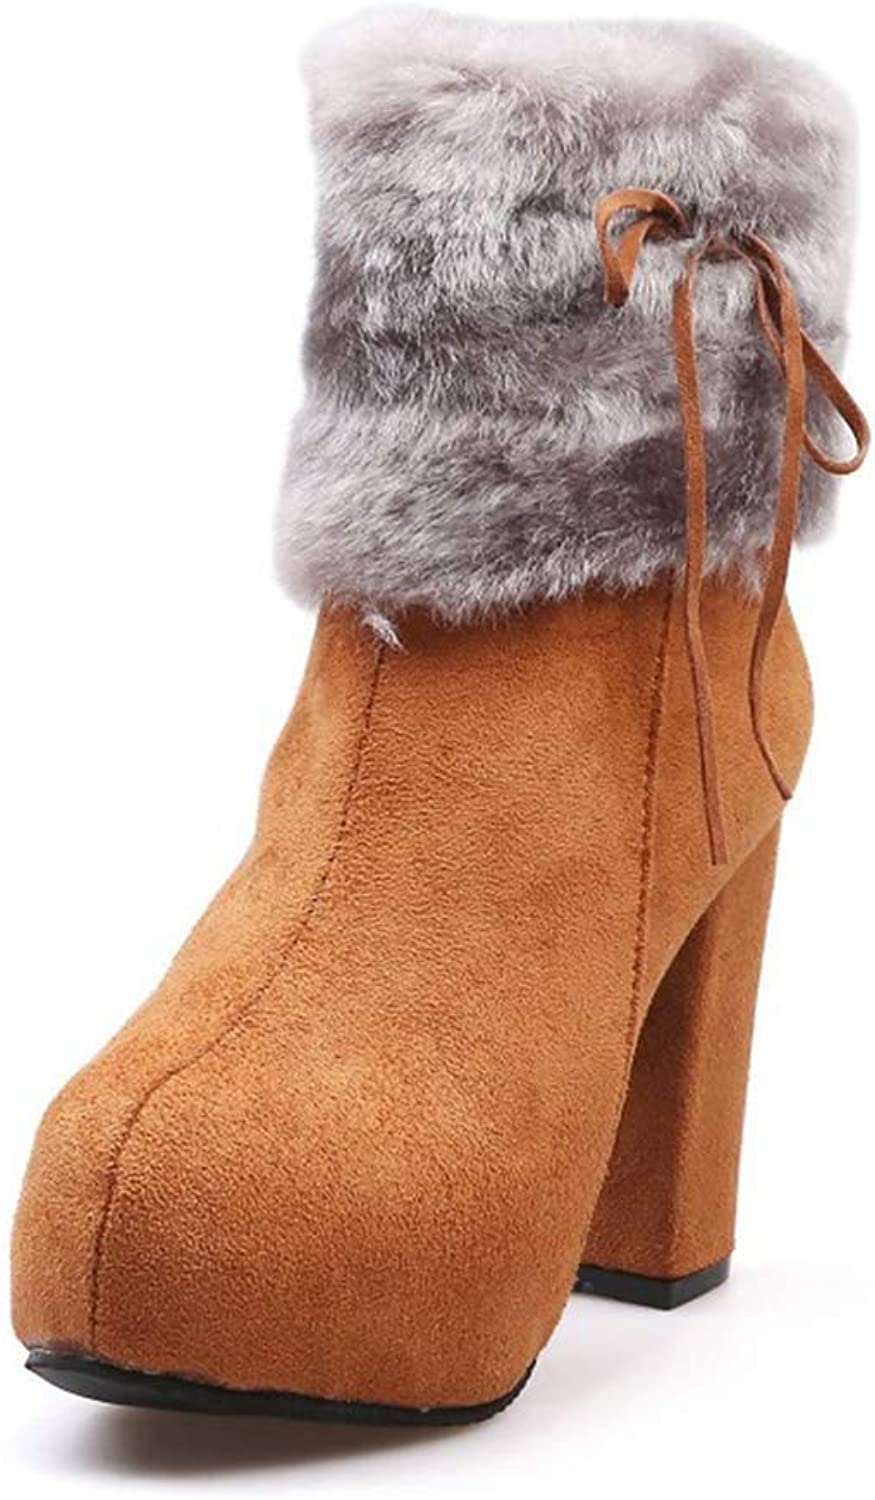 Womens Boots - Round Toe High Heel Brown Work Boots for Women Fluffy